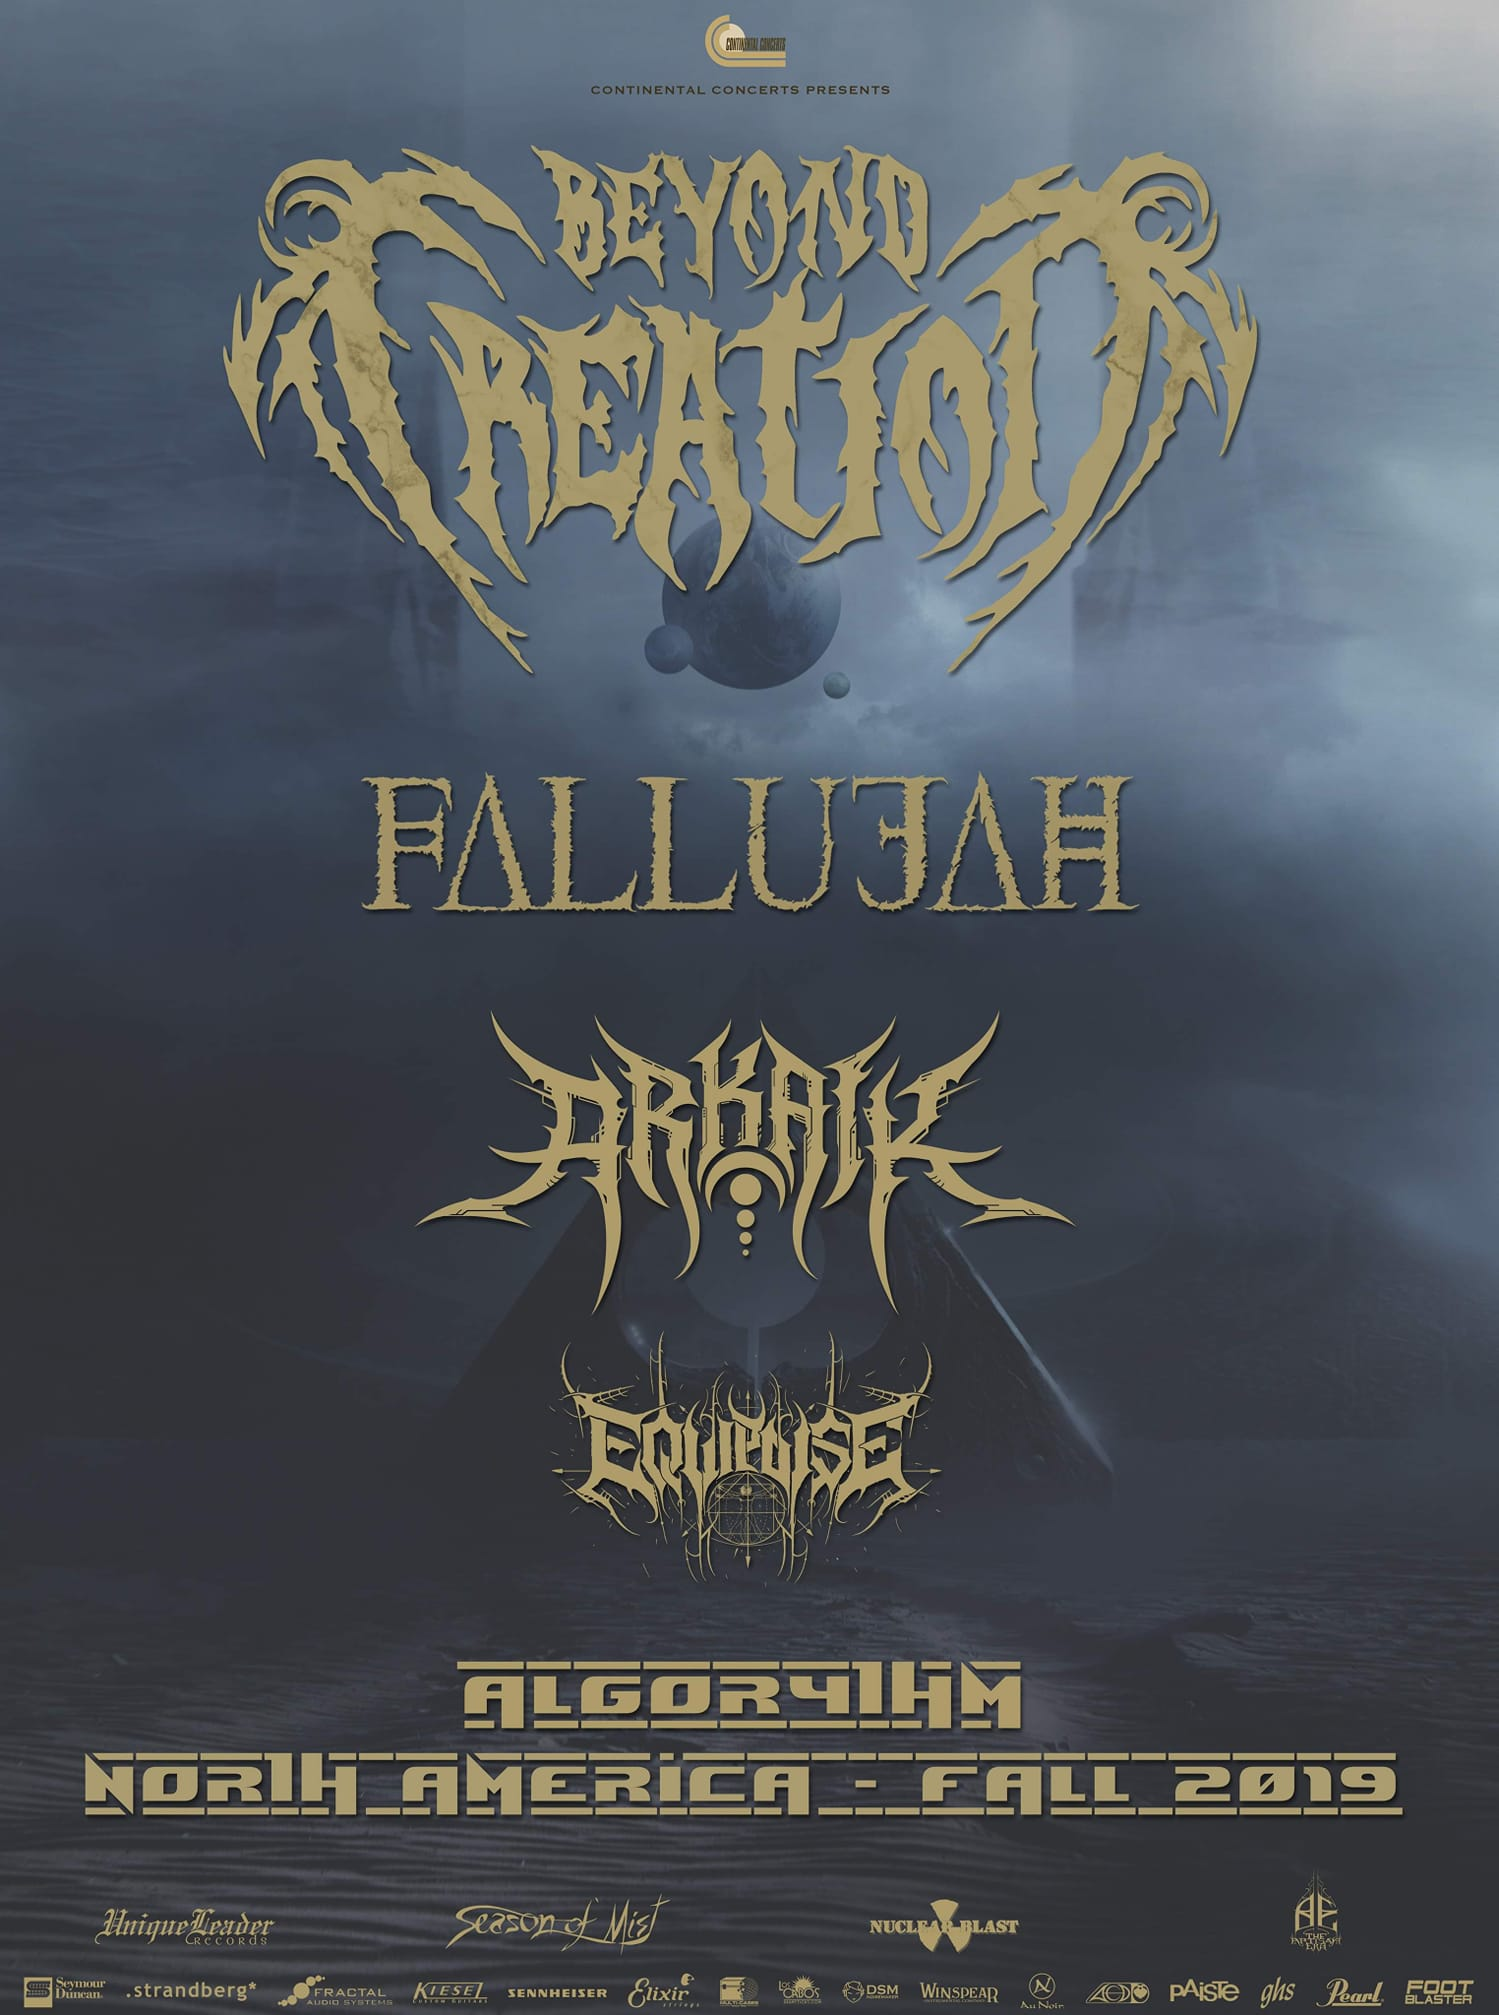 Beyond Creation To Headline Monster North American Tour This Fall